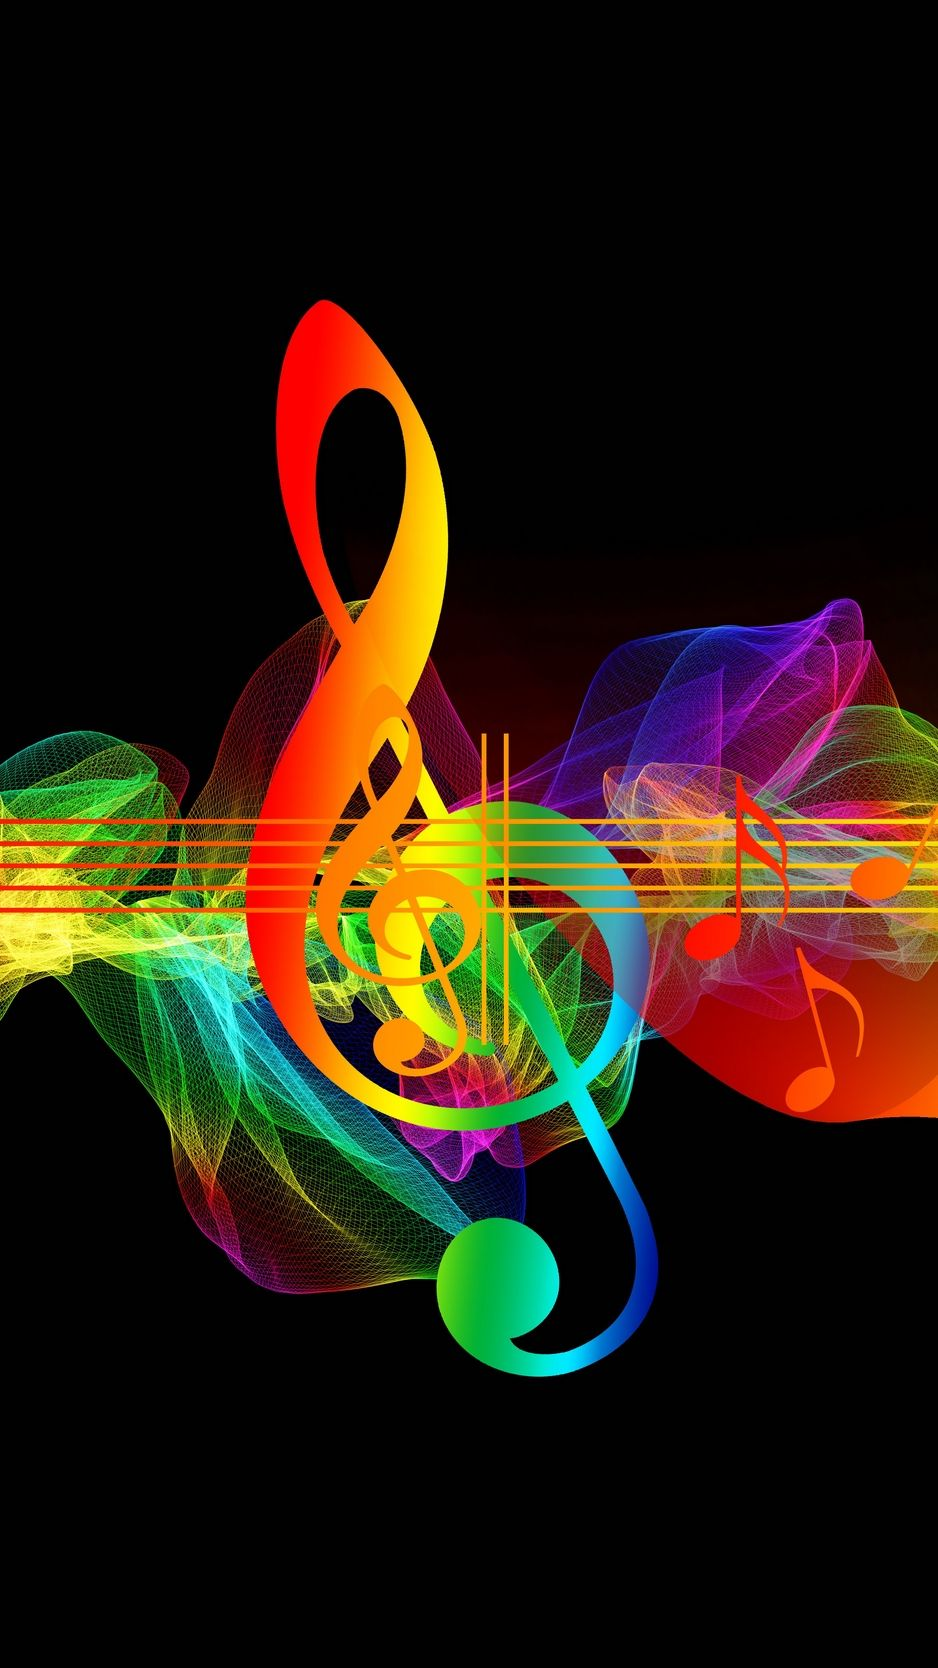 Treble Clef Musical Notes Multicolored Rainbow Wallpaper Music Wallpaper Music Notes Art Music Artwork Colorful music symbol music wallpaper hd